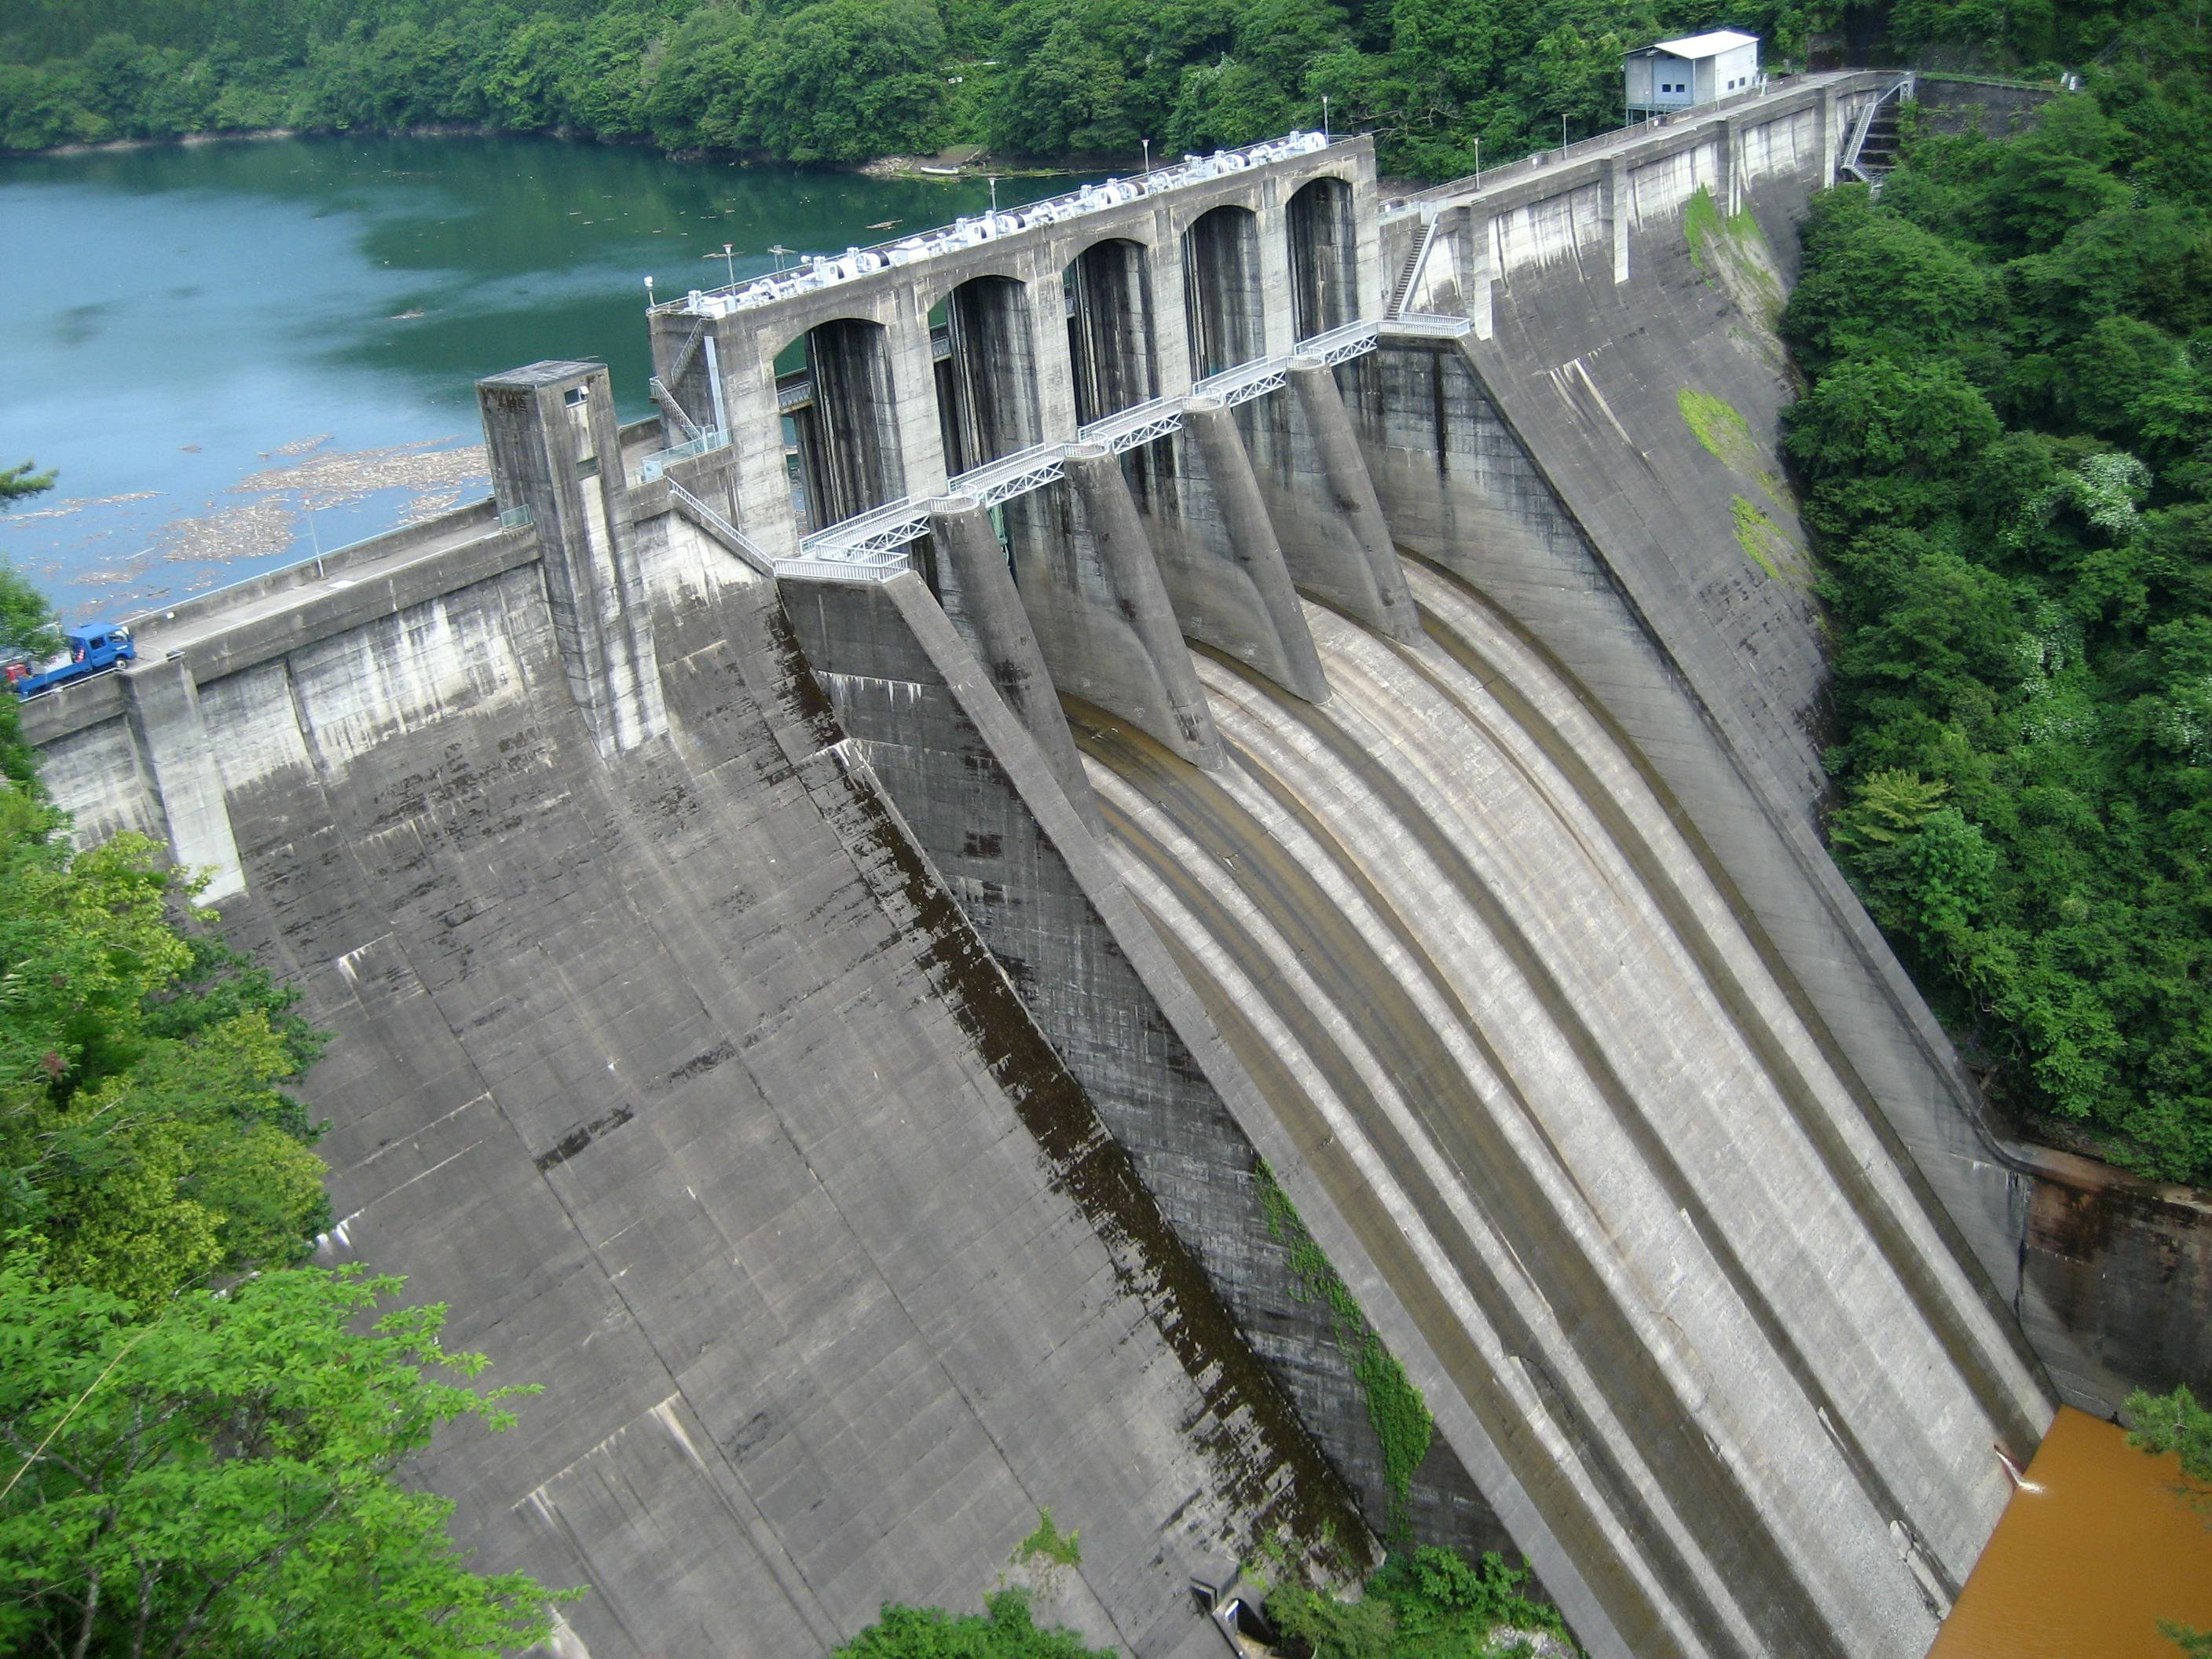 EIA: The World's Nine Largest Operating Power Plants Are Hydroelectric Facilities